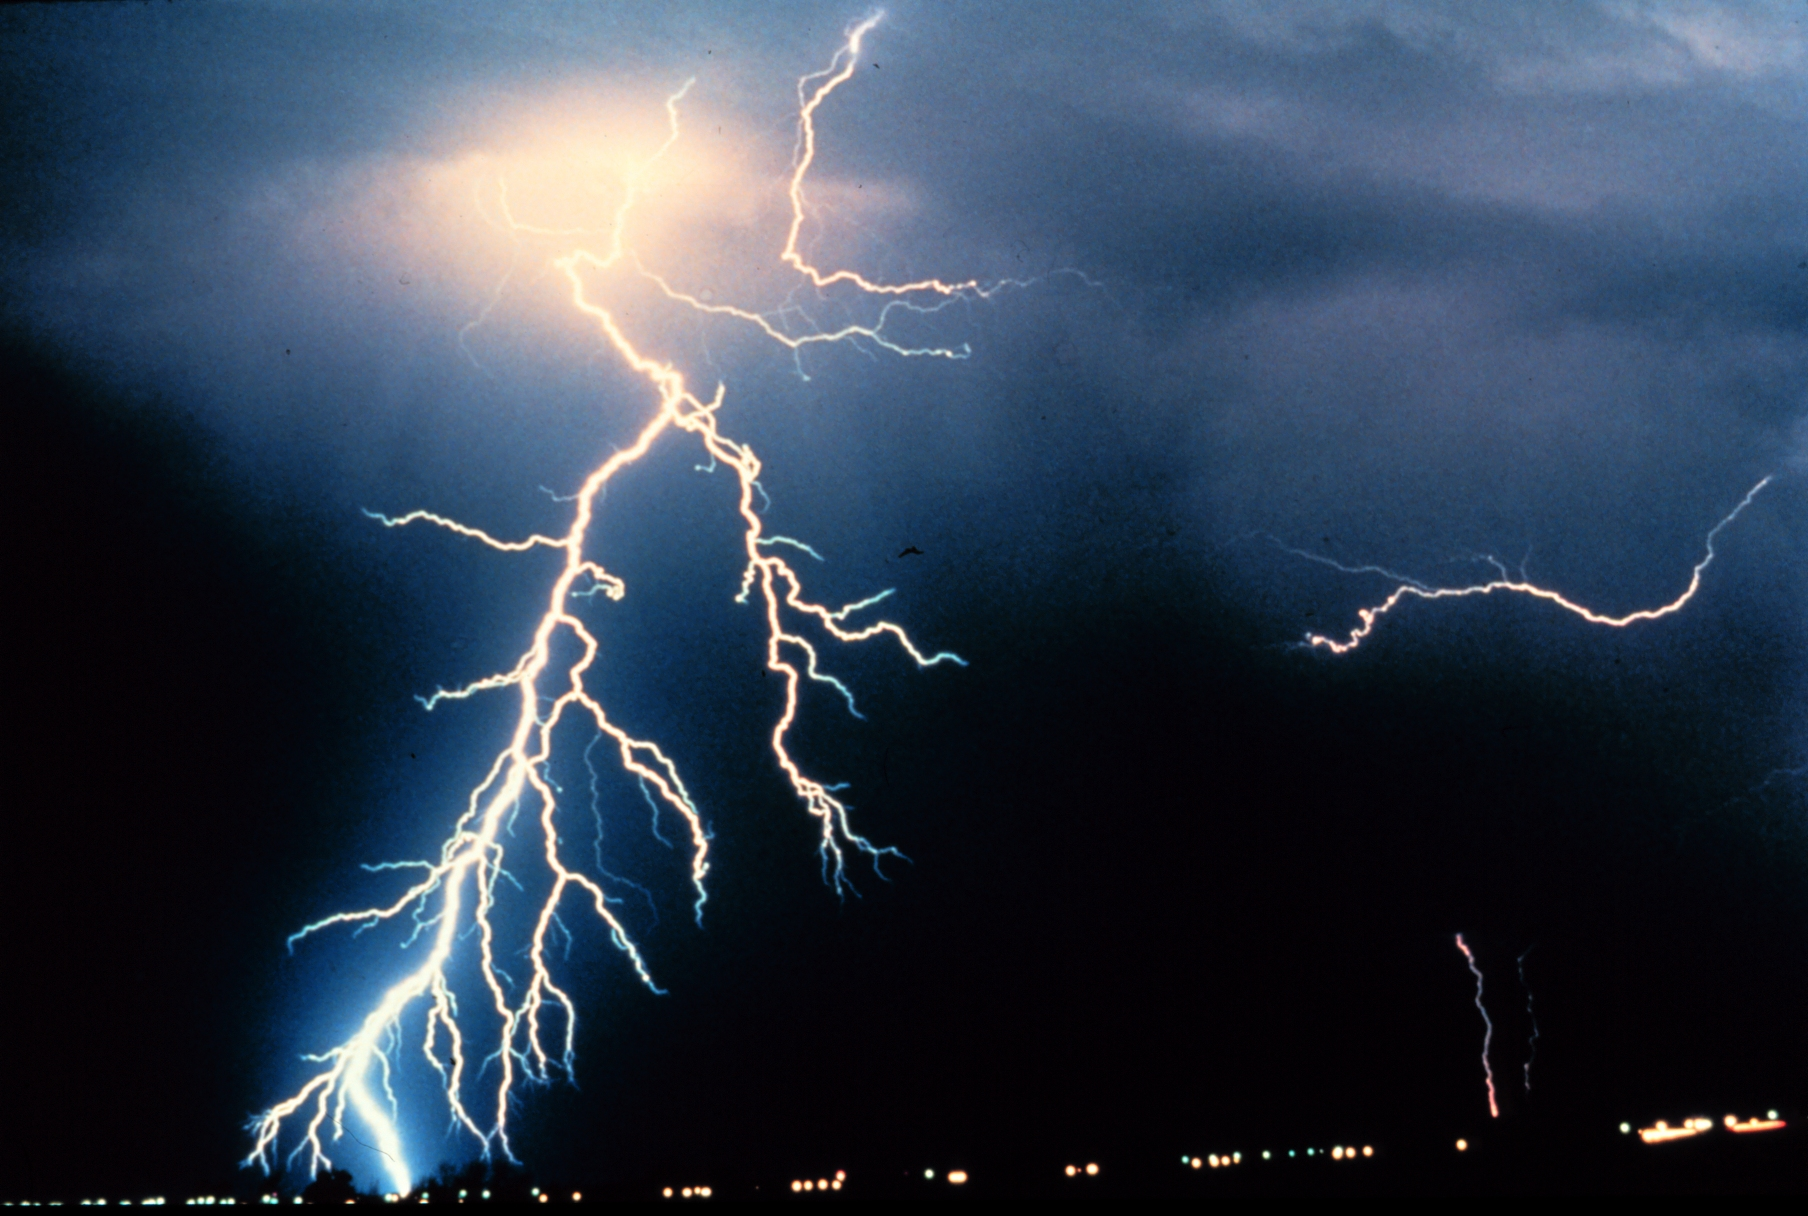 Image of dramatic lightning strike. Credit: NOAA Photo Library, NOAA Central Library; OAR/ERL/National Severe Storms Laboratory (NSSL)